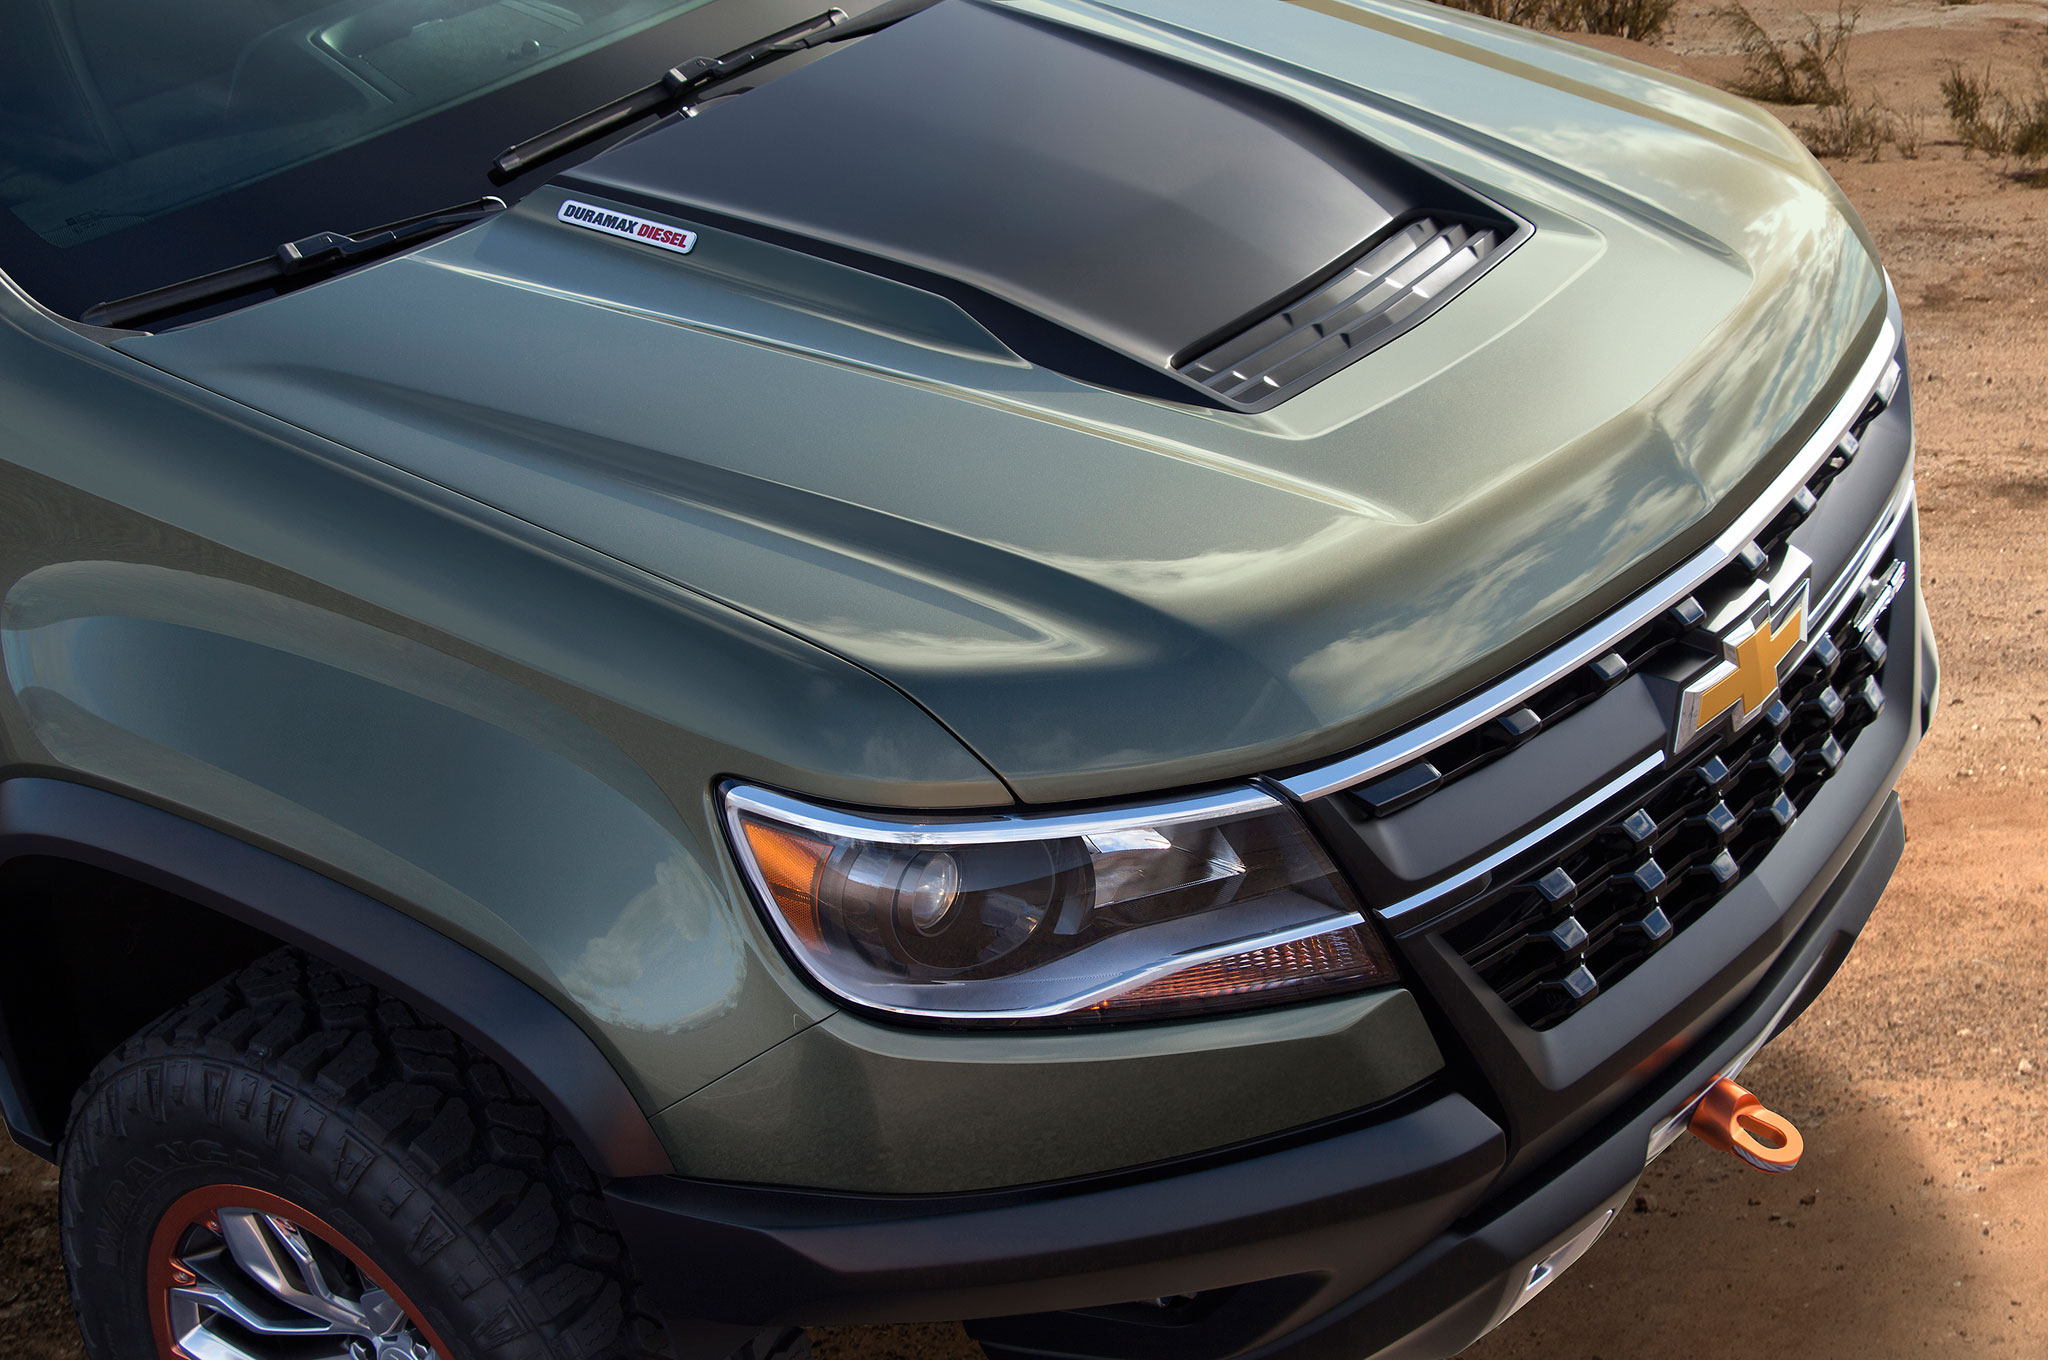 Hood Of The 2015 Chevrolet Colorado